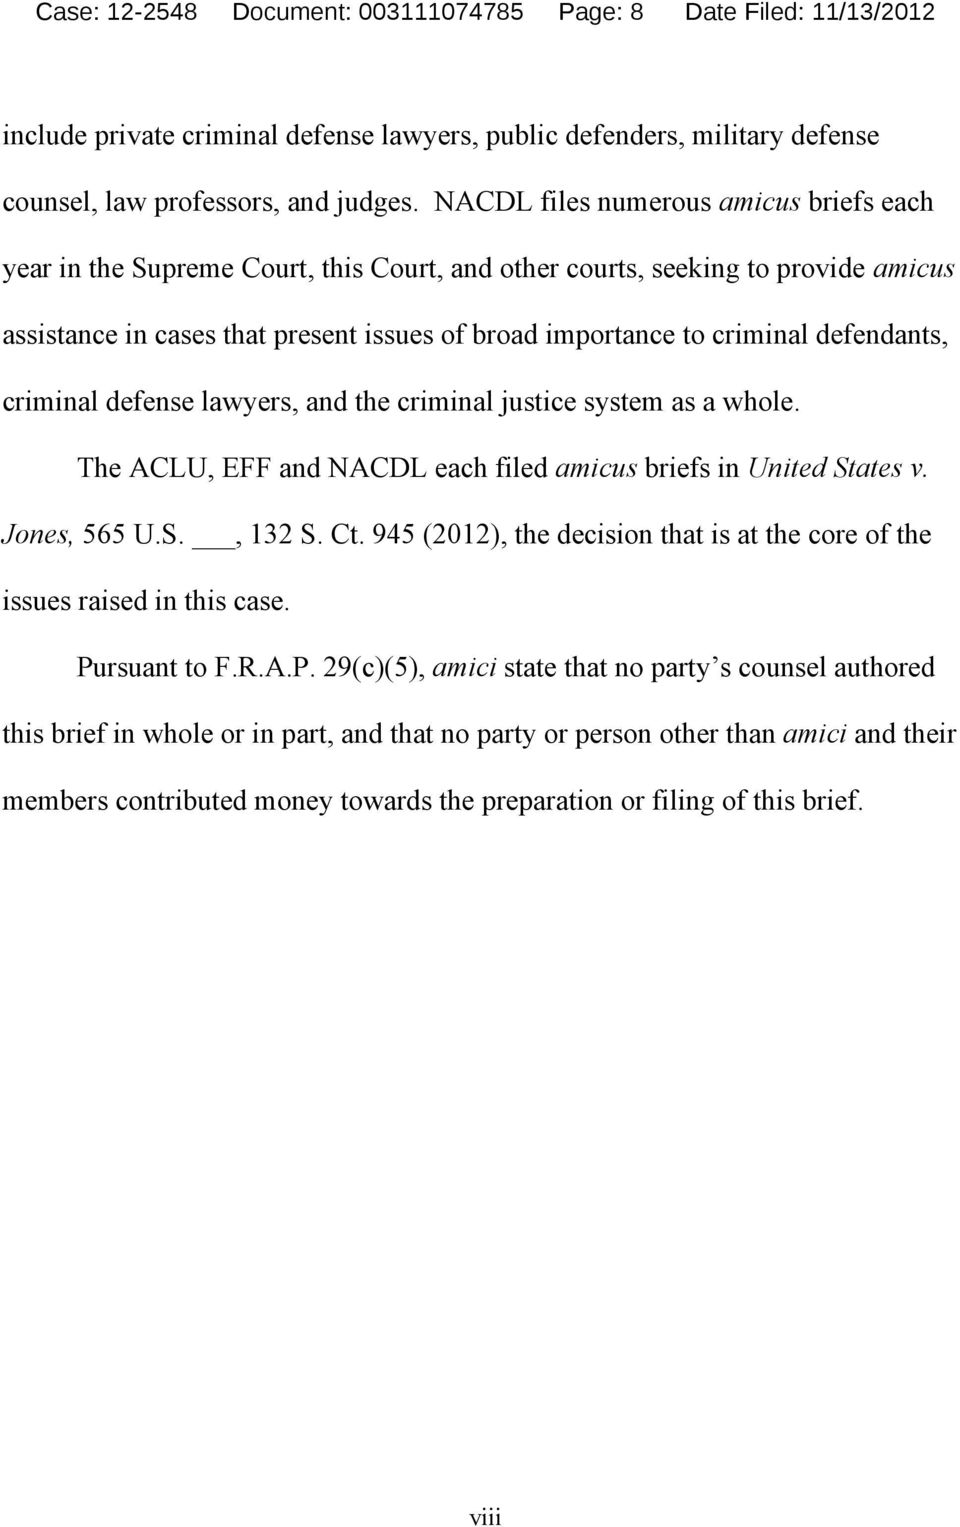 NACDL files numerous amicus briefs each year in the Supreme Court, this Court, and other courts, seeking to provide amicus assistance in cases that present issues of broad importance to criminal